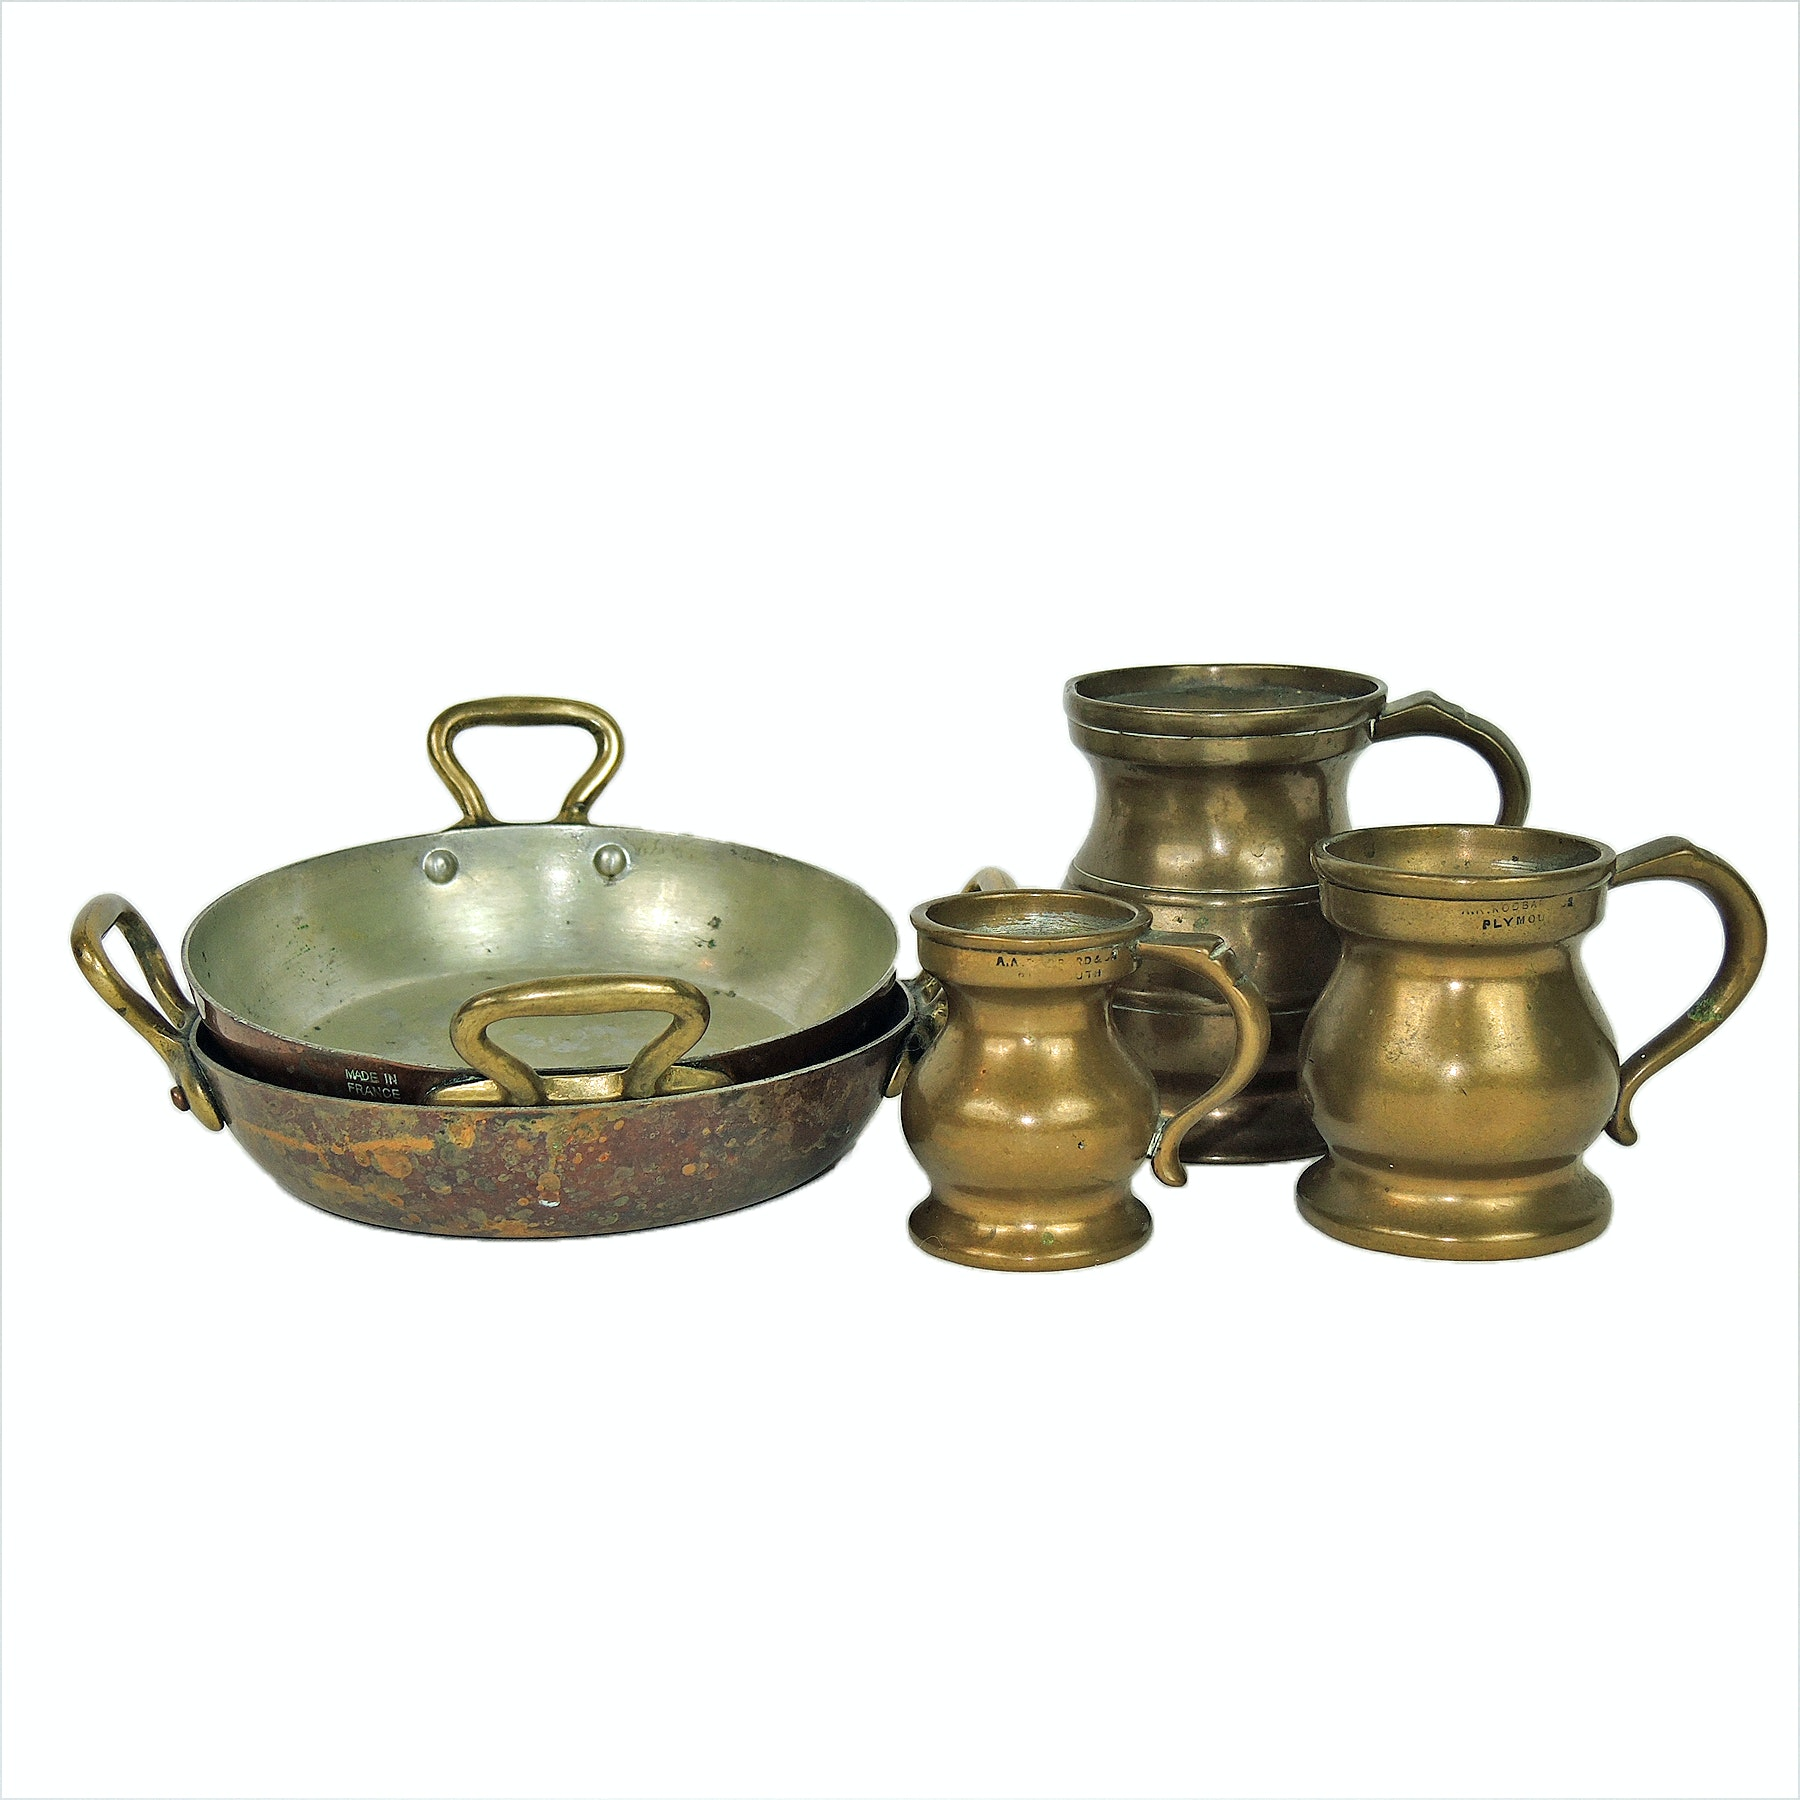 Bronze Graduate English Tavern Measures and Double Handled Skillets